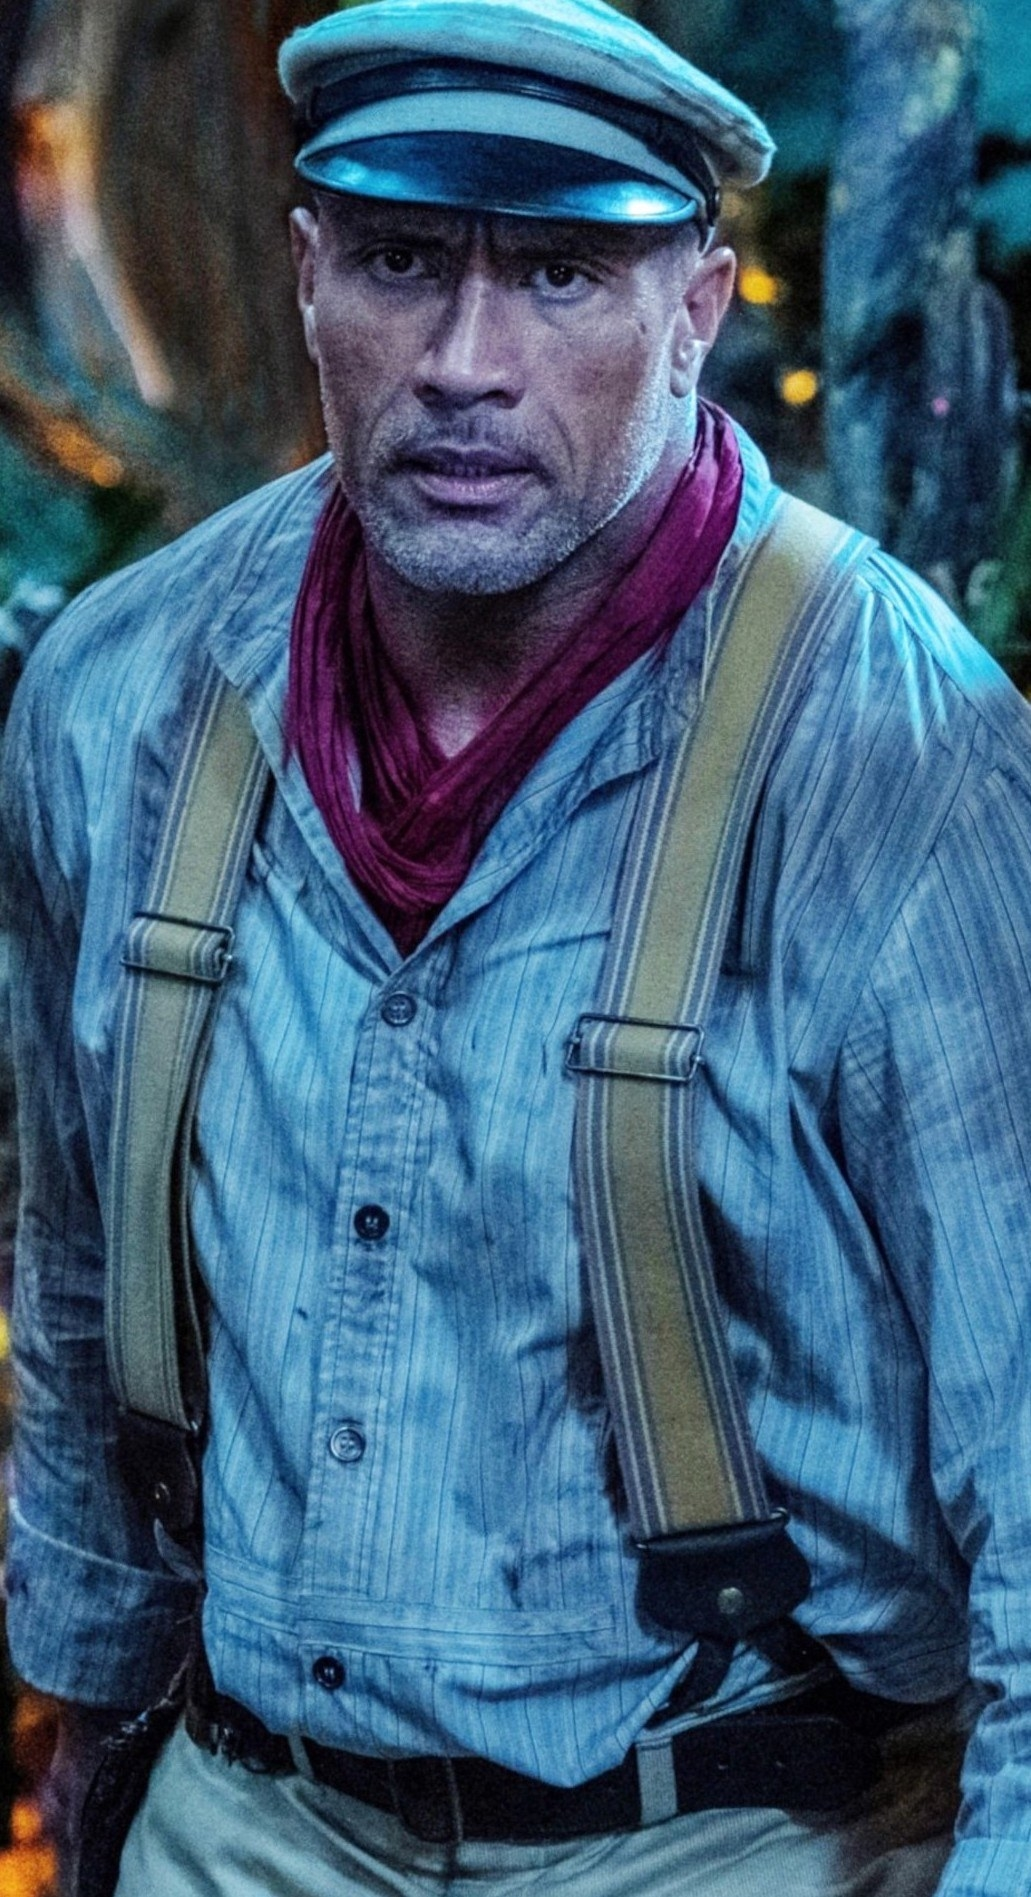 """Dwayne """"The Rock"""" Johnson wearing a cap, suspenders, and a button-up shirt"""